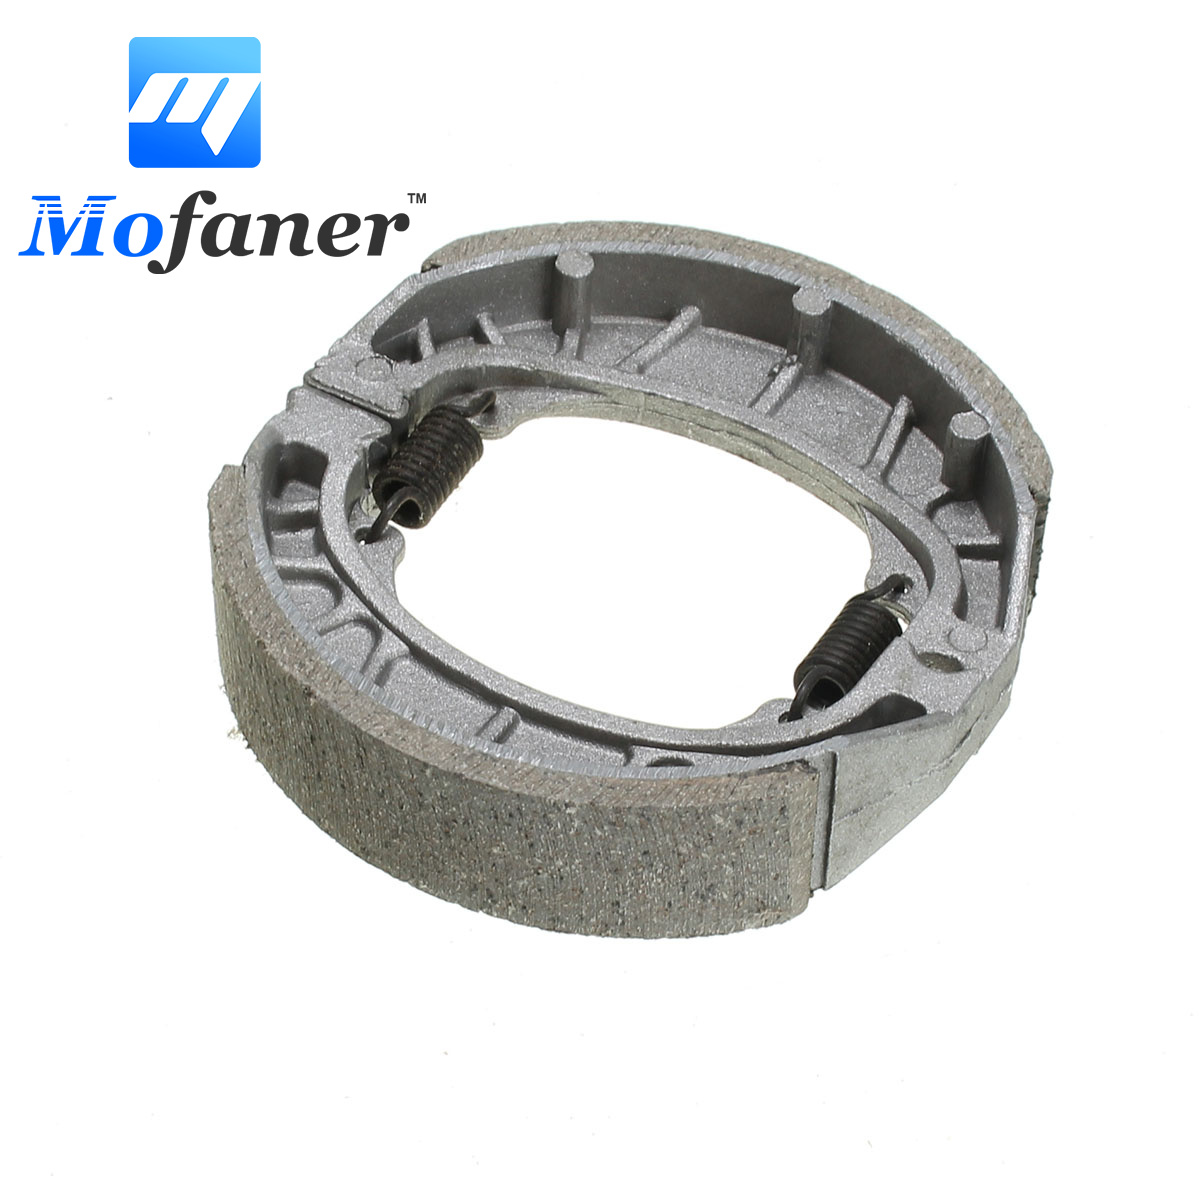 105mm Motorcycle Brake Pads Shoe Rear For GY6 50cc 110cc 125cc 150cc Scooter BRAK-0003 Sliver brake shoe